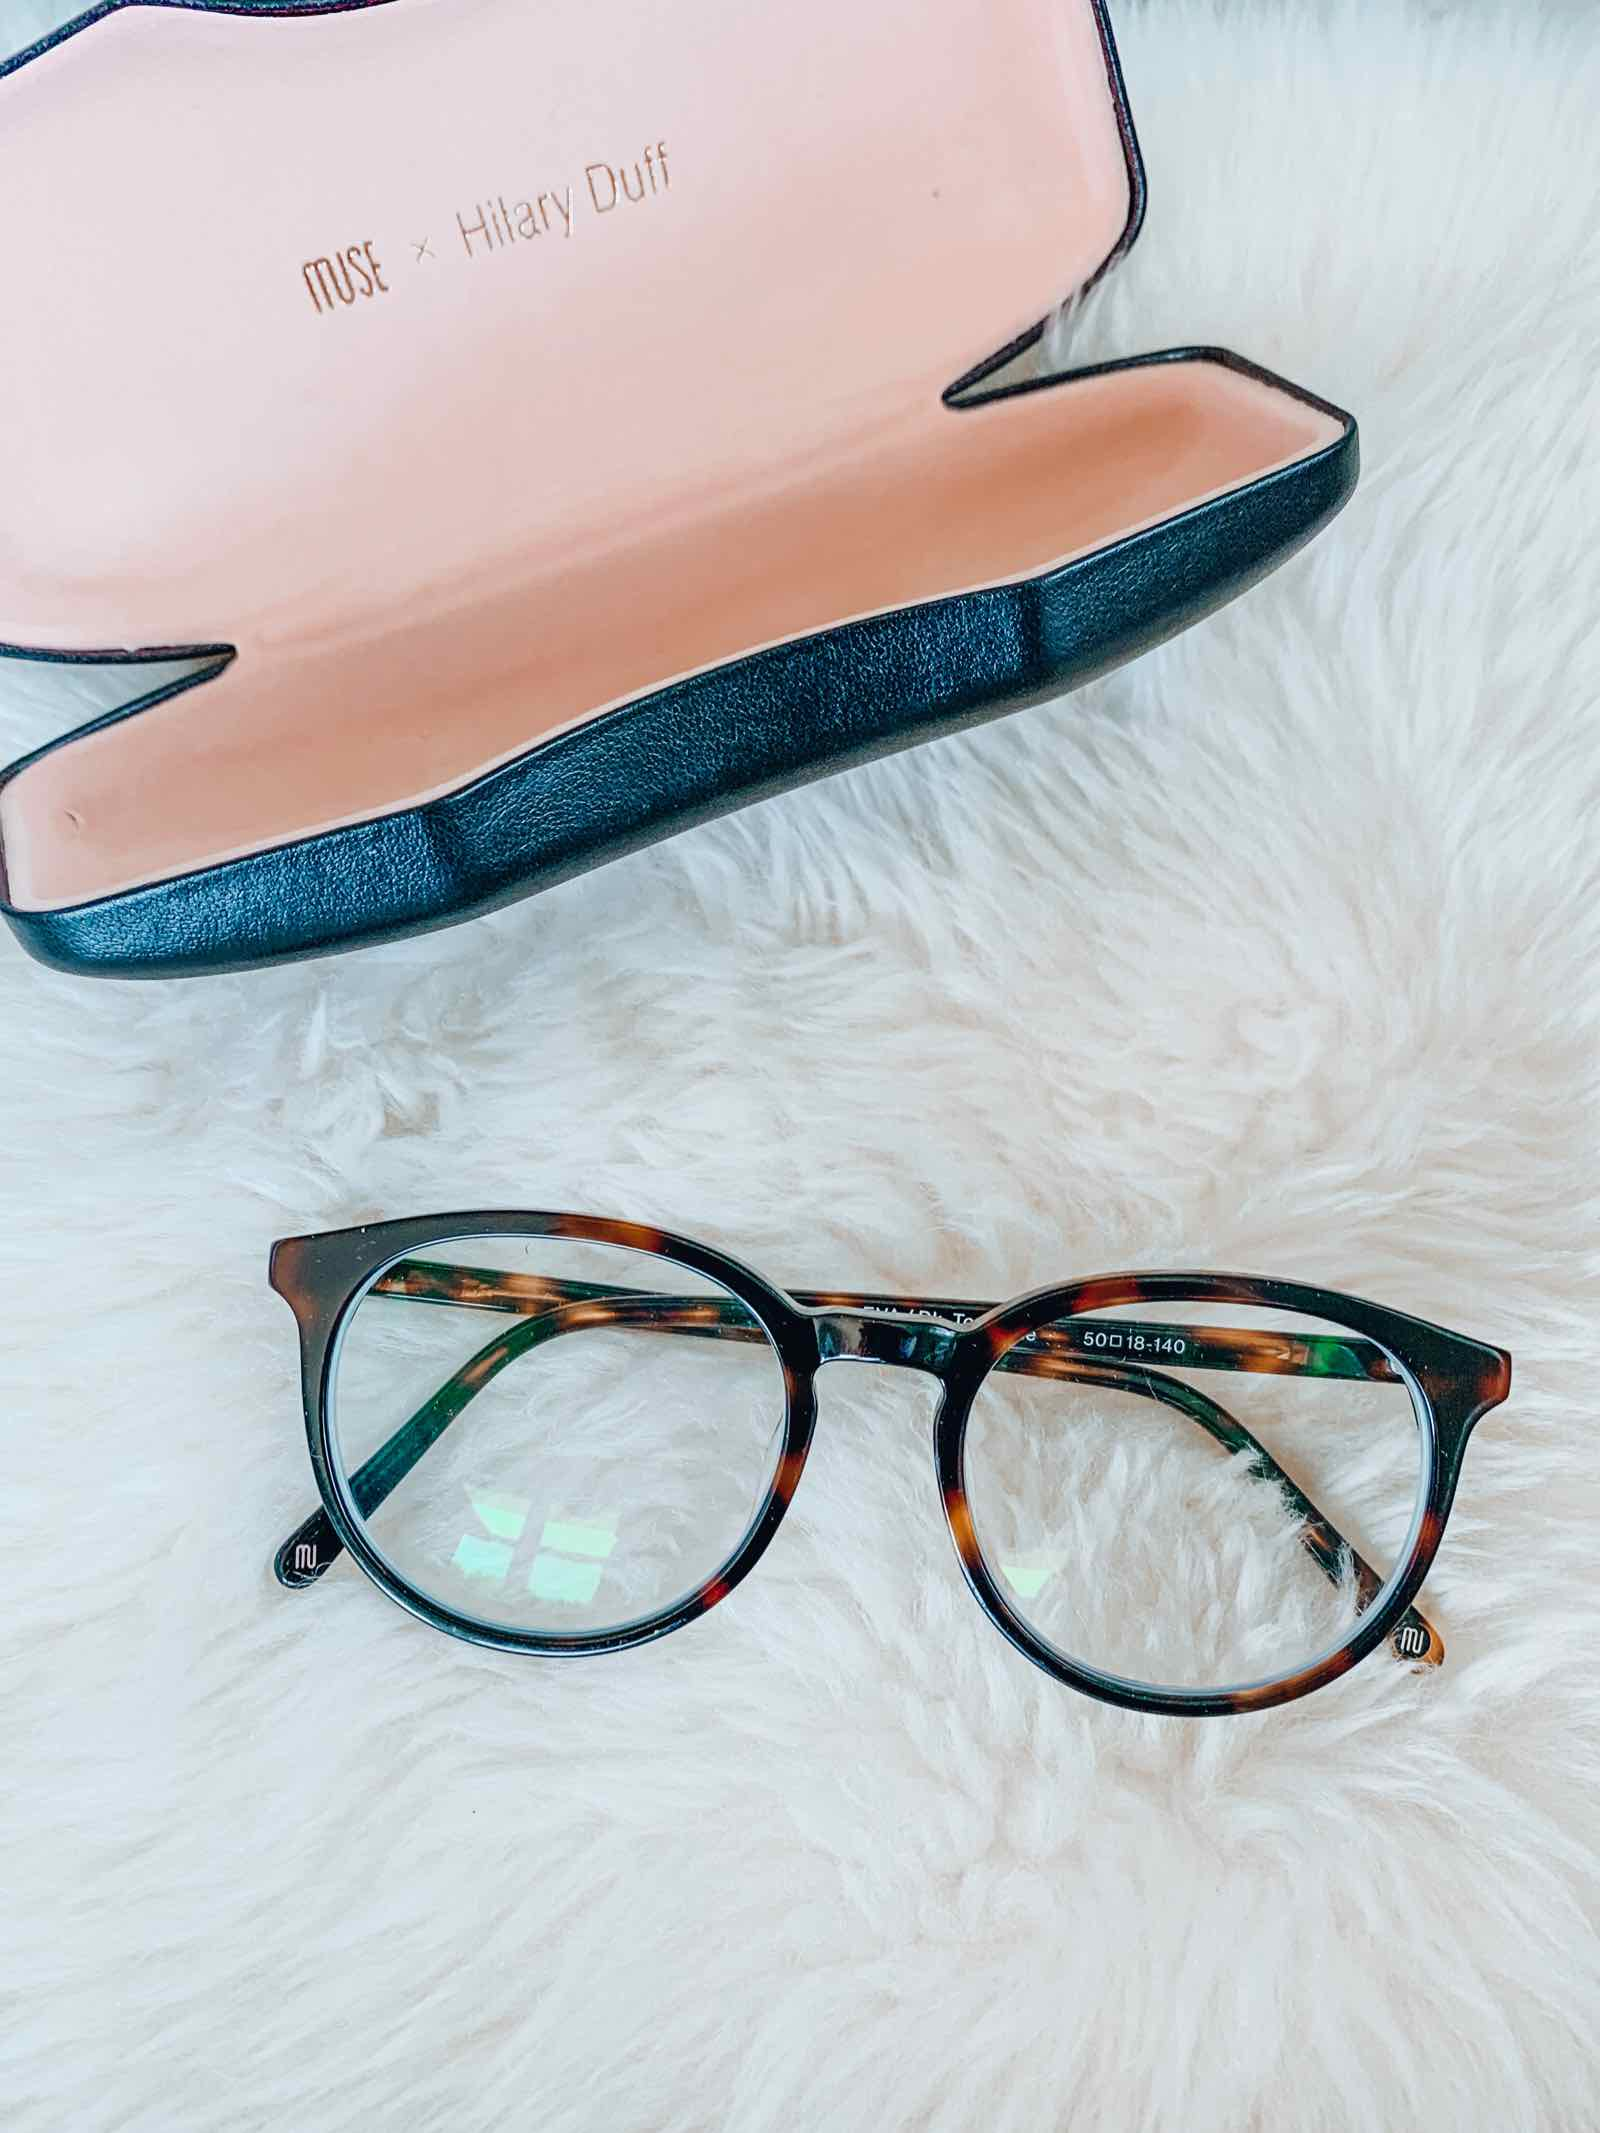 GlassesUSA.com has the cutest prescription glasses, easy, fast and affordable!